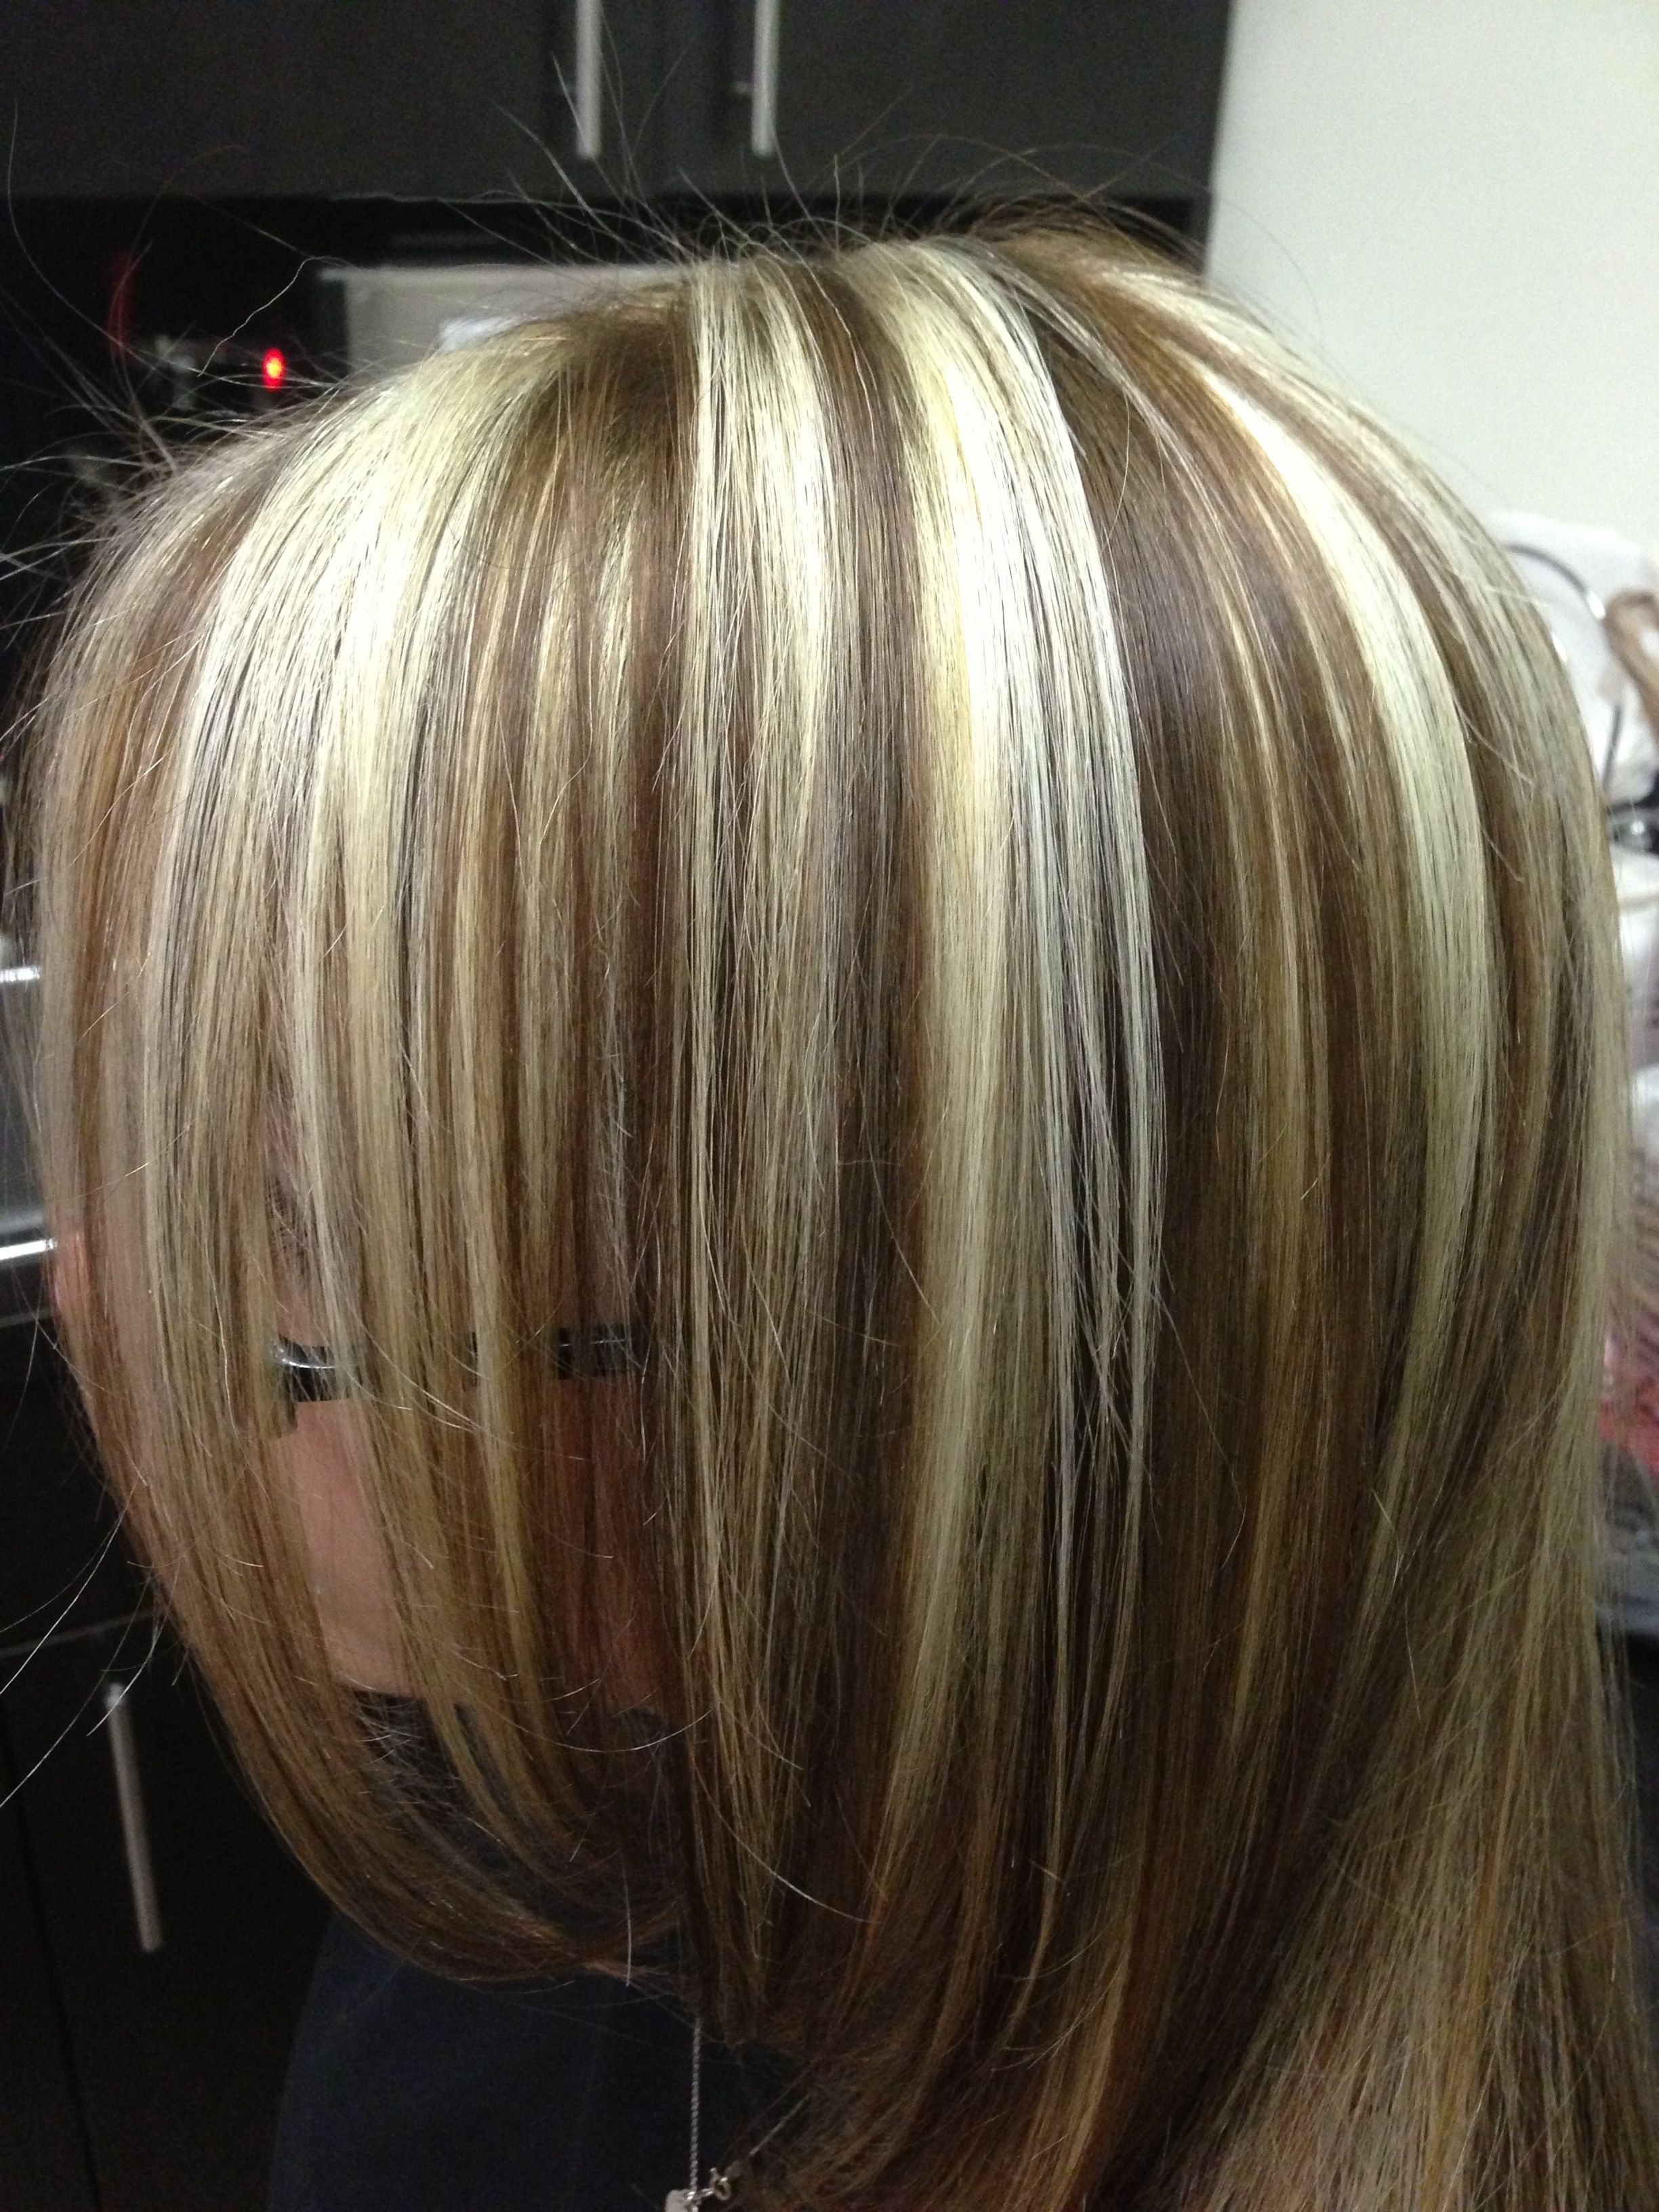 Blonde Highlights And Golden Brown Lowlights Derrica Mccullers